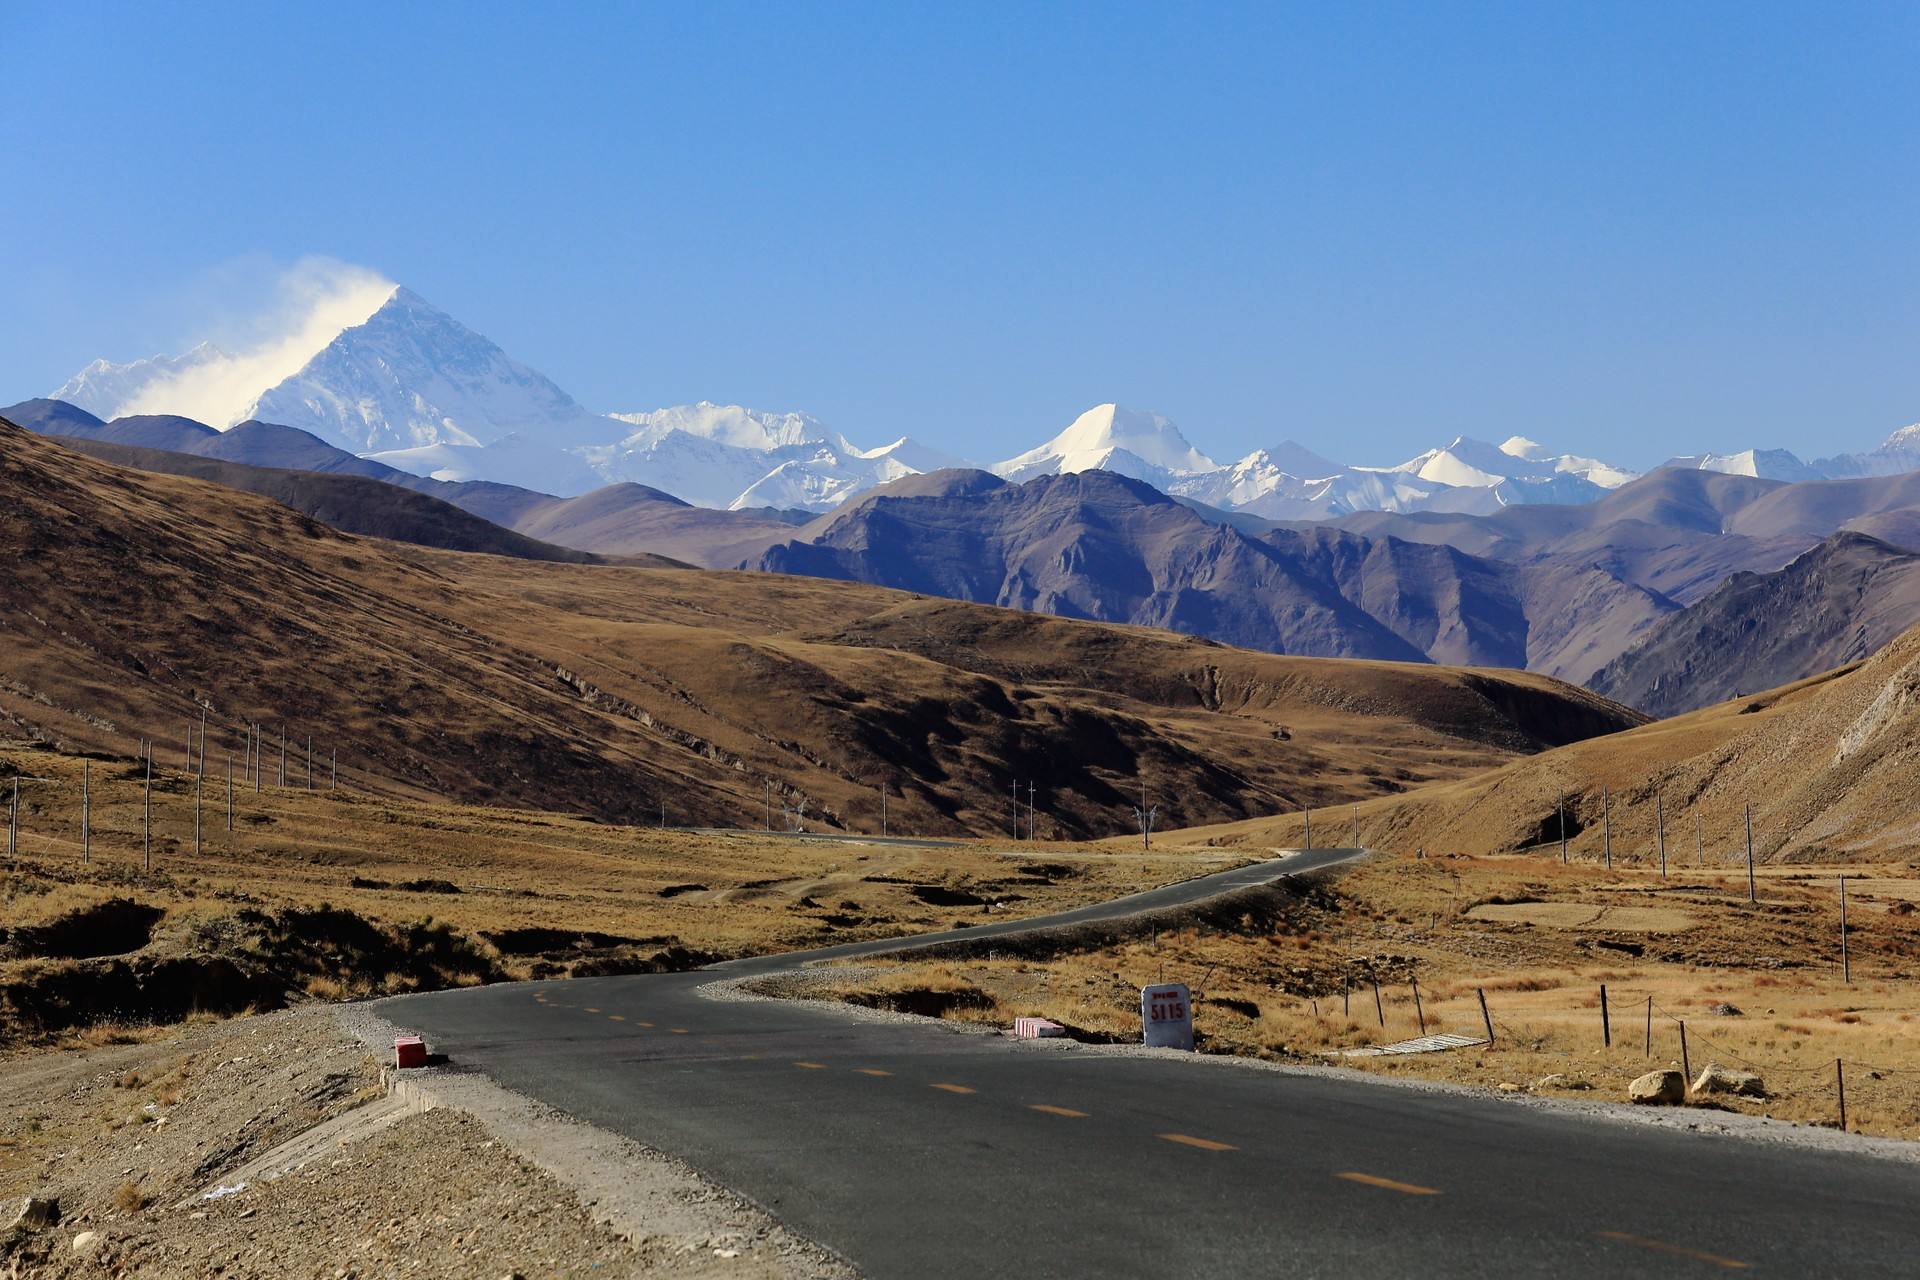 The 500 mile Friendship Highway between Nepal and Tibet